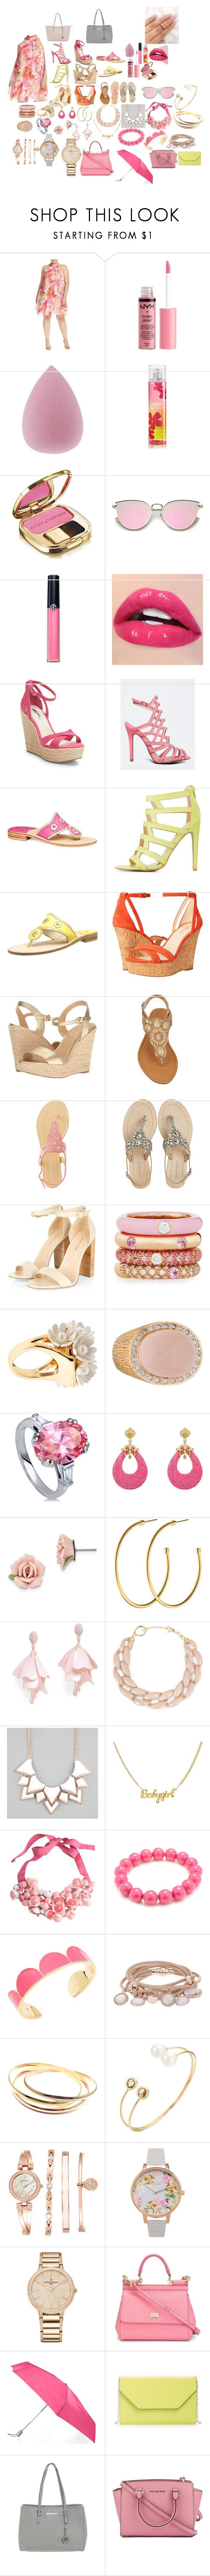 """plus size spring outfit"" by turnerjazmyne on Polyvore featuring Eliza J, Charlotte Russe, Dolce&Gabbana, Armani Beauty, BCBGeneration, Qupid, Jack Rogers, Nine West, MICHAEL Michael Kors and Olivia Miller"